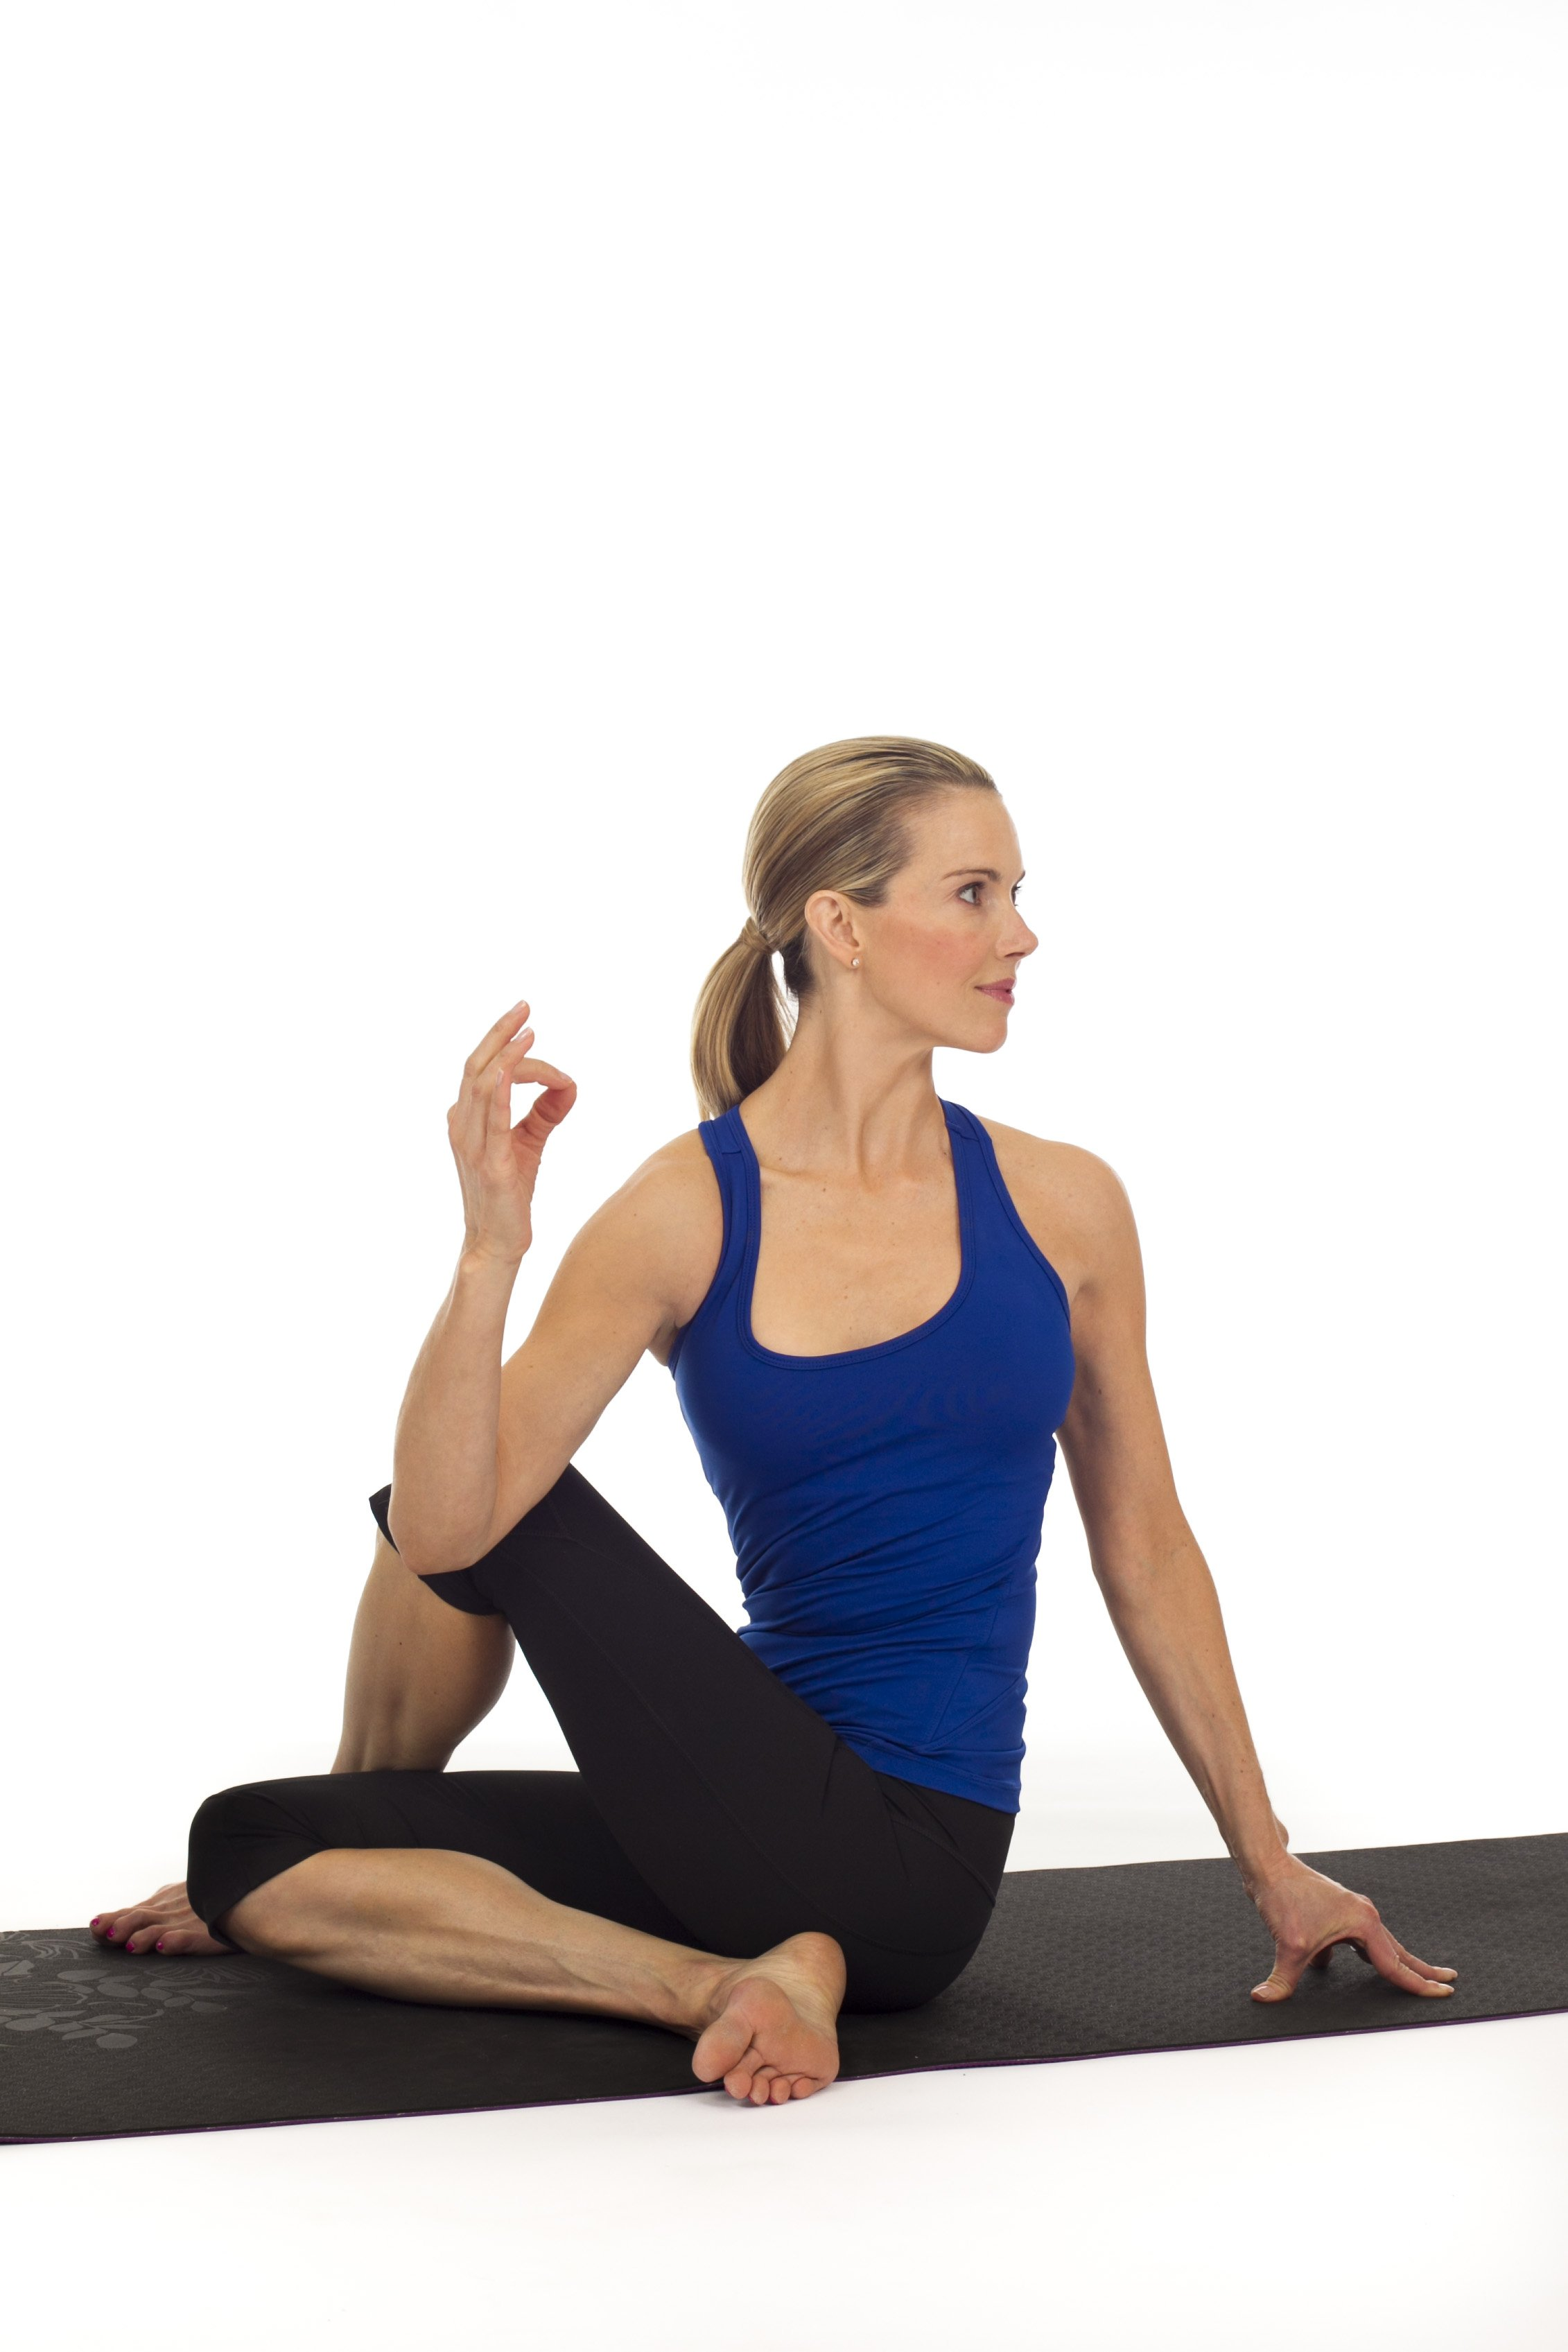 Spring Clean Your Body With These Detoxifying Yoga Twists